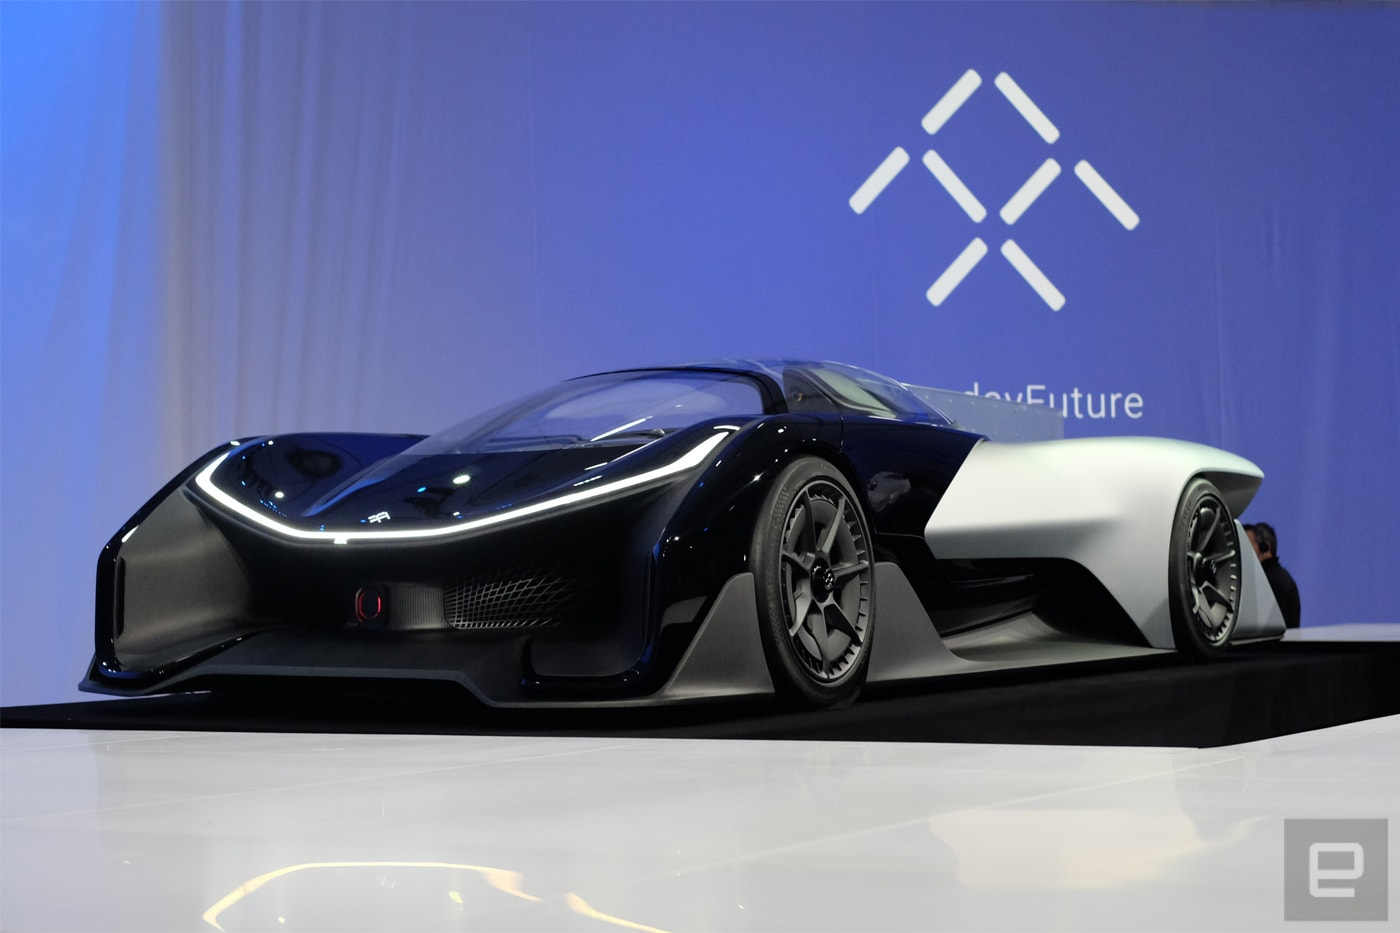 Faraday Future Has Partnered With Lg Chem To Build Battery Packs For S Upcoming Ffzero1 Supercar And Other Vehicles That Use Its New Electric Car